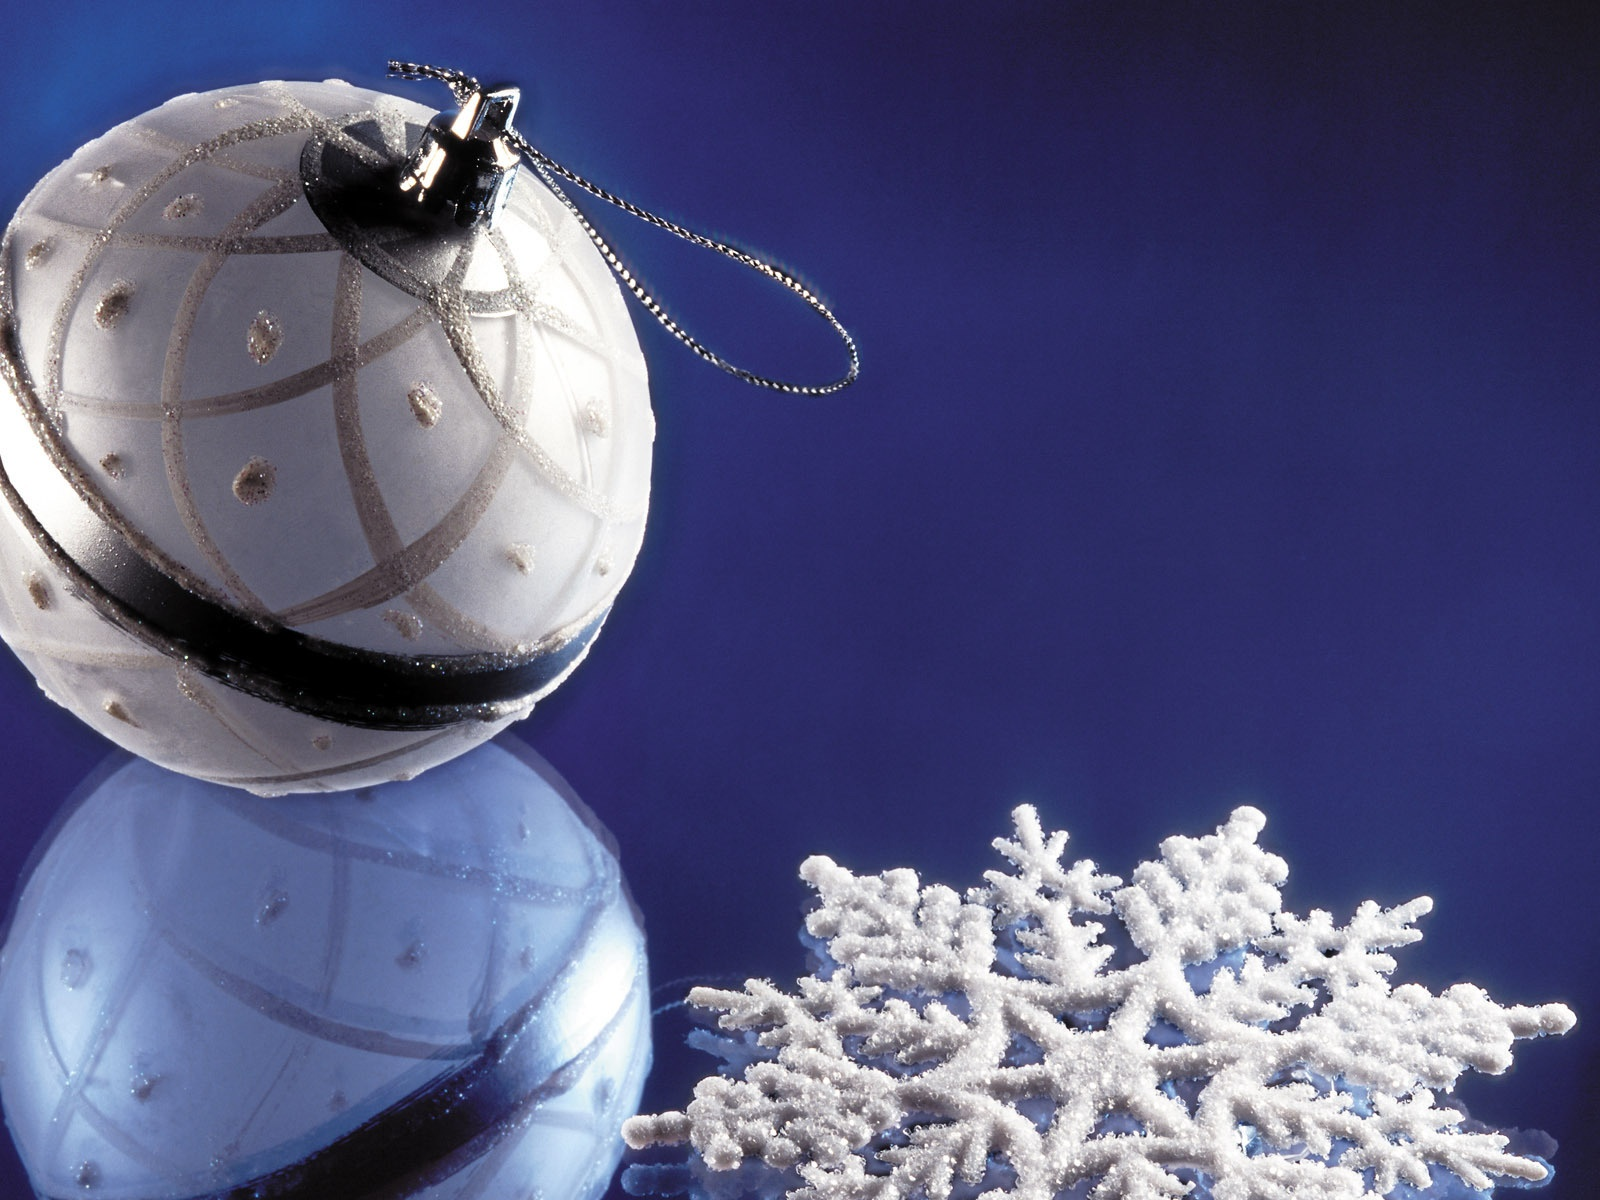 1500x500 Christmas decorations, bauble, snowflake, holiday, holidays